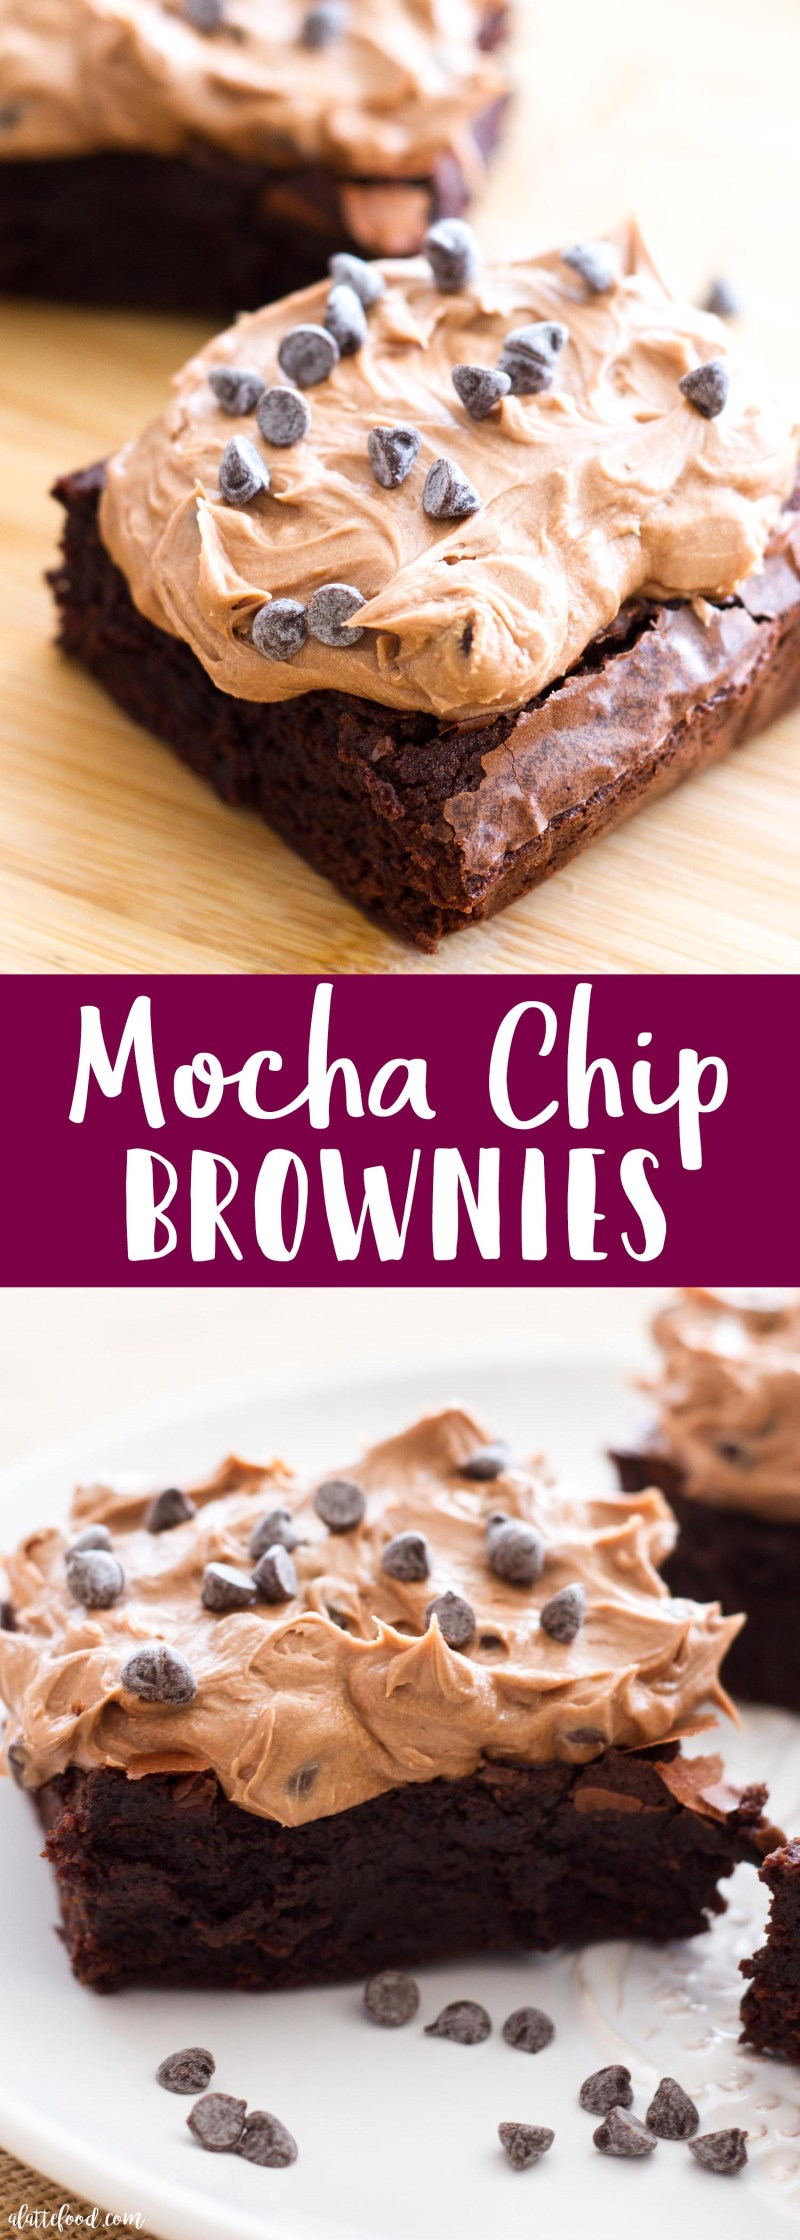 These fudgy brownies are made with coffee, espresso powder, cinnamon, and topped off with a mocha chip frosting. Can you say a-latte yum?! These rich chocolate brownies are the best dessert or midnight snack!